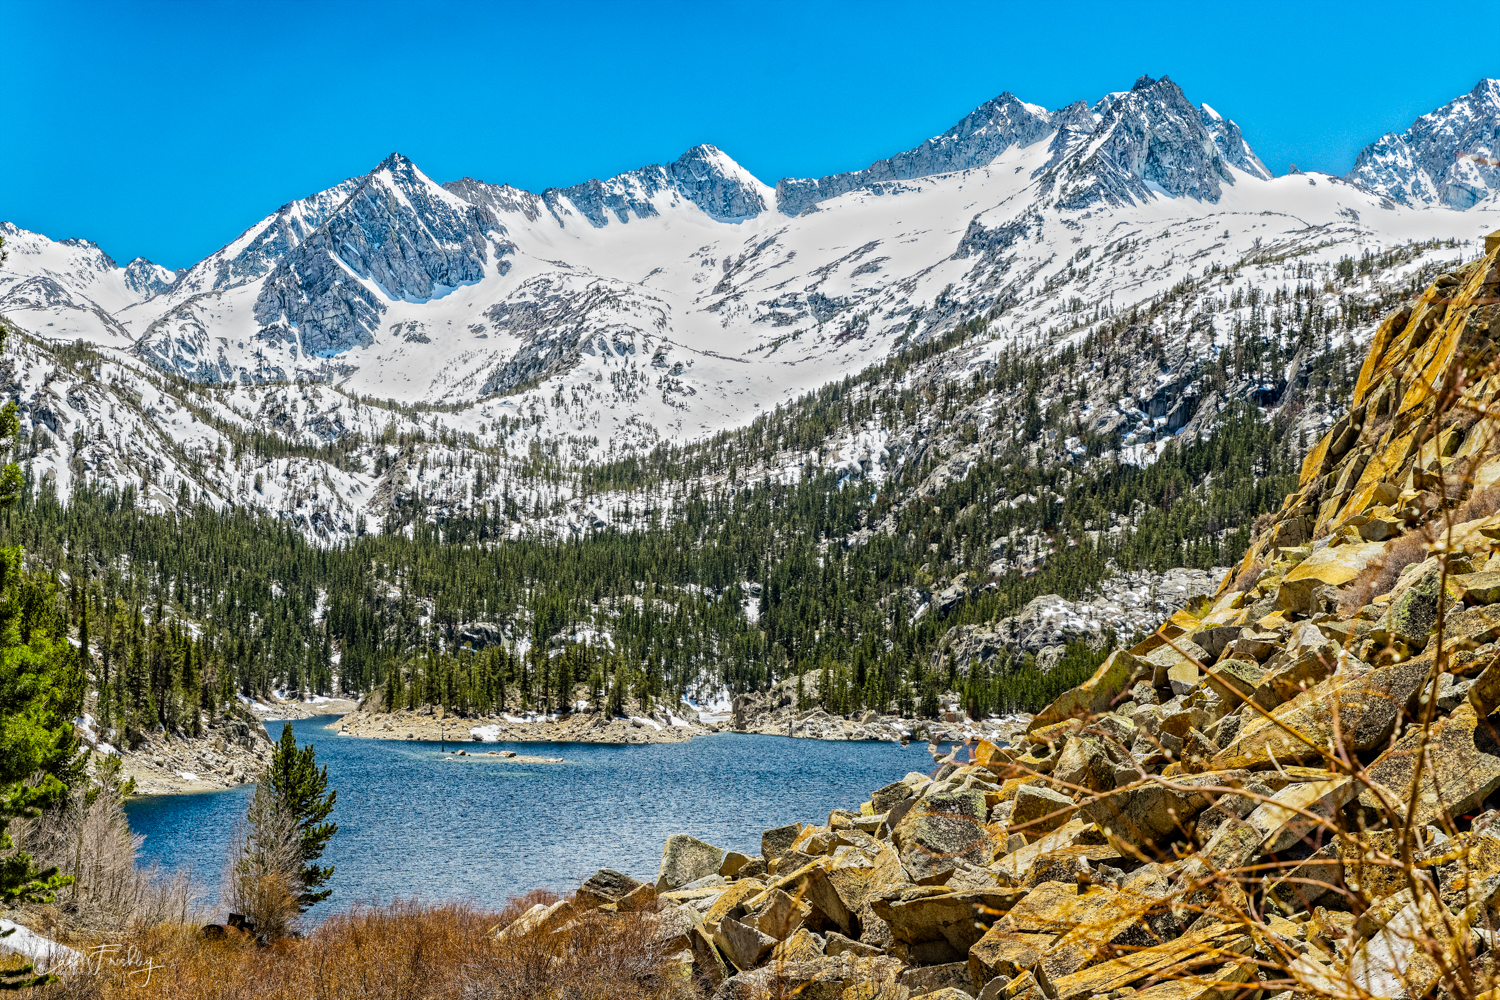 South Lake had more snow in the surrounding mountains. I cannot get over how blue the skies and lakes are!